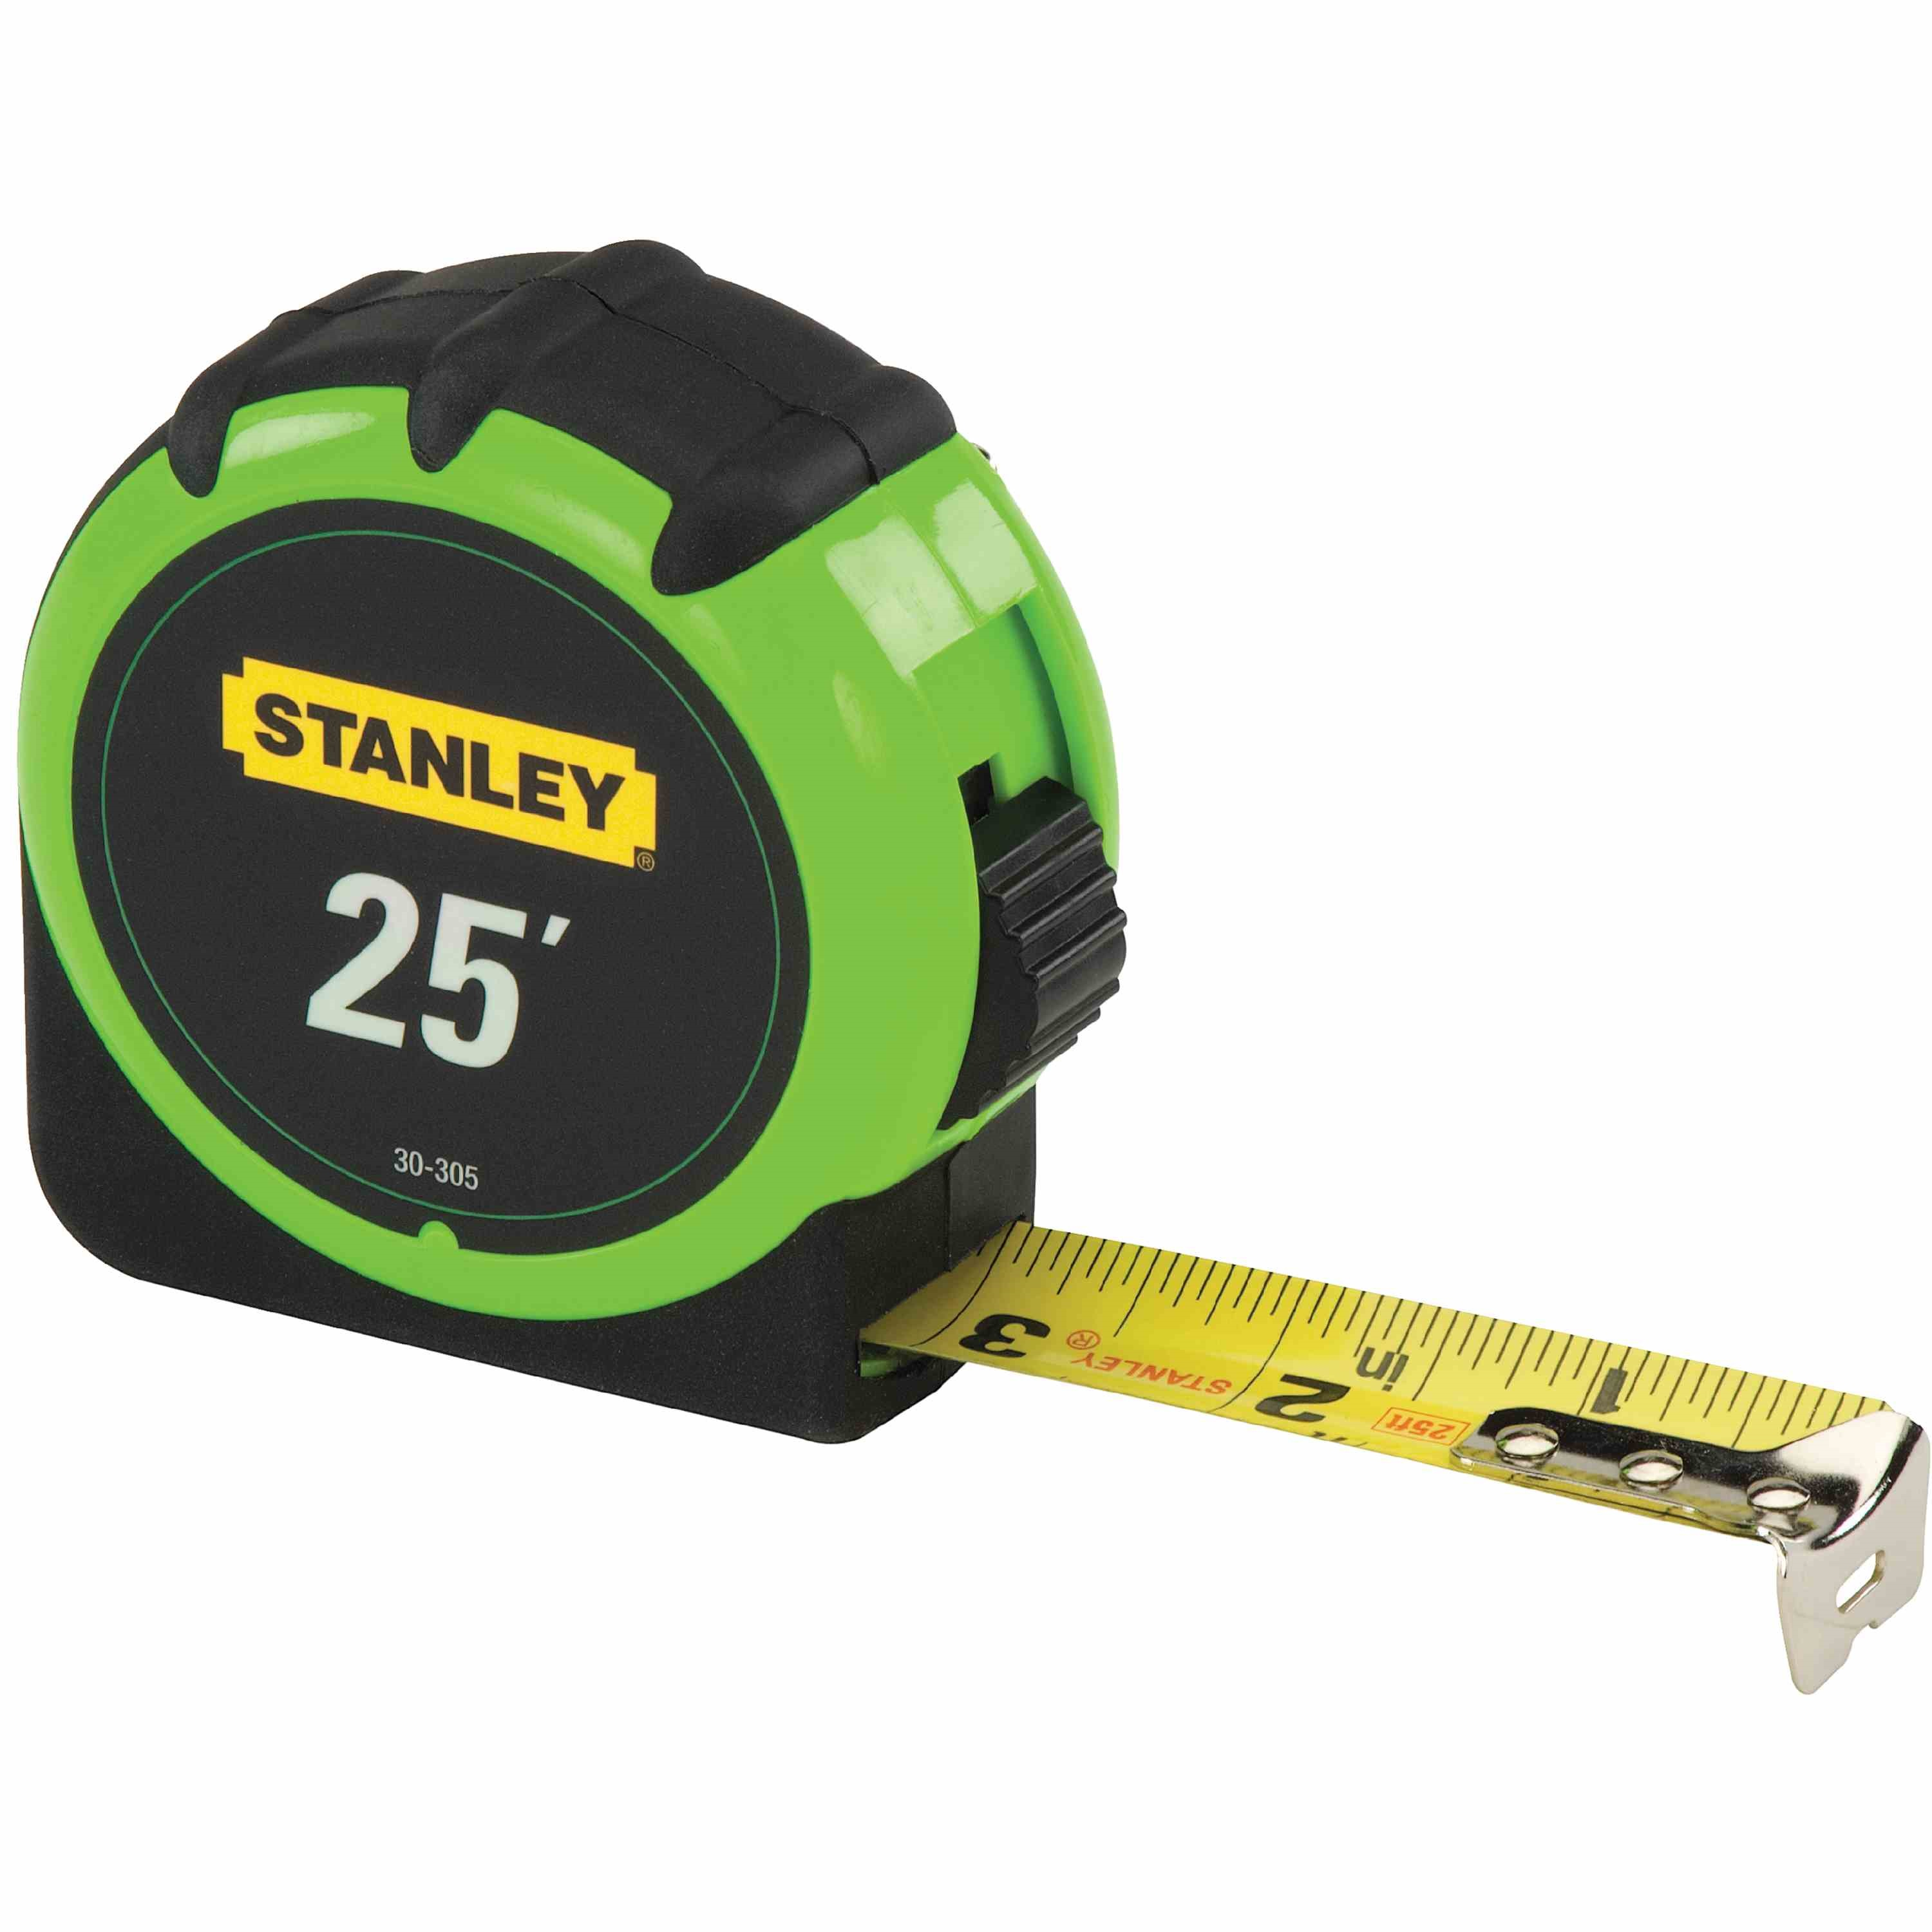 Stanley Tools - 25 ft HighVisibility Tape Measure - 30-305